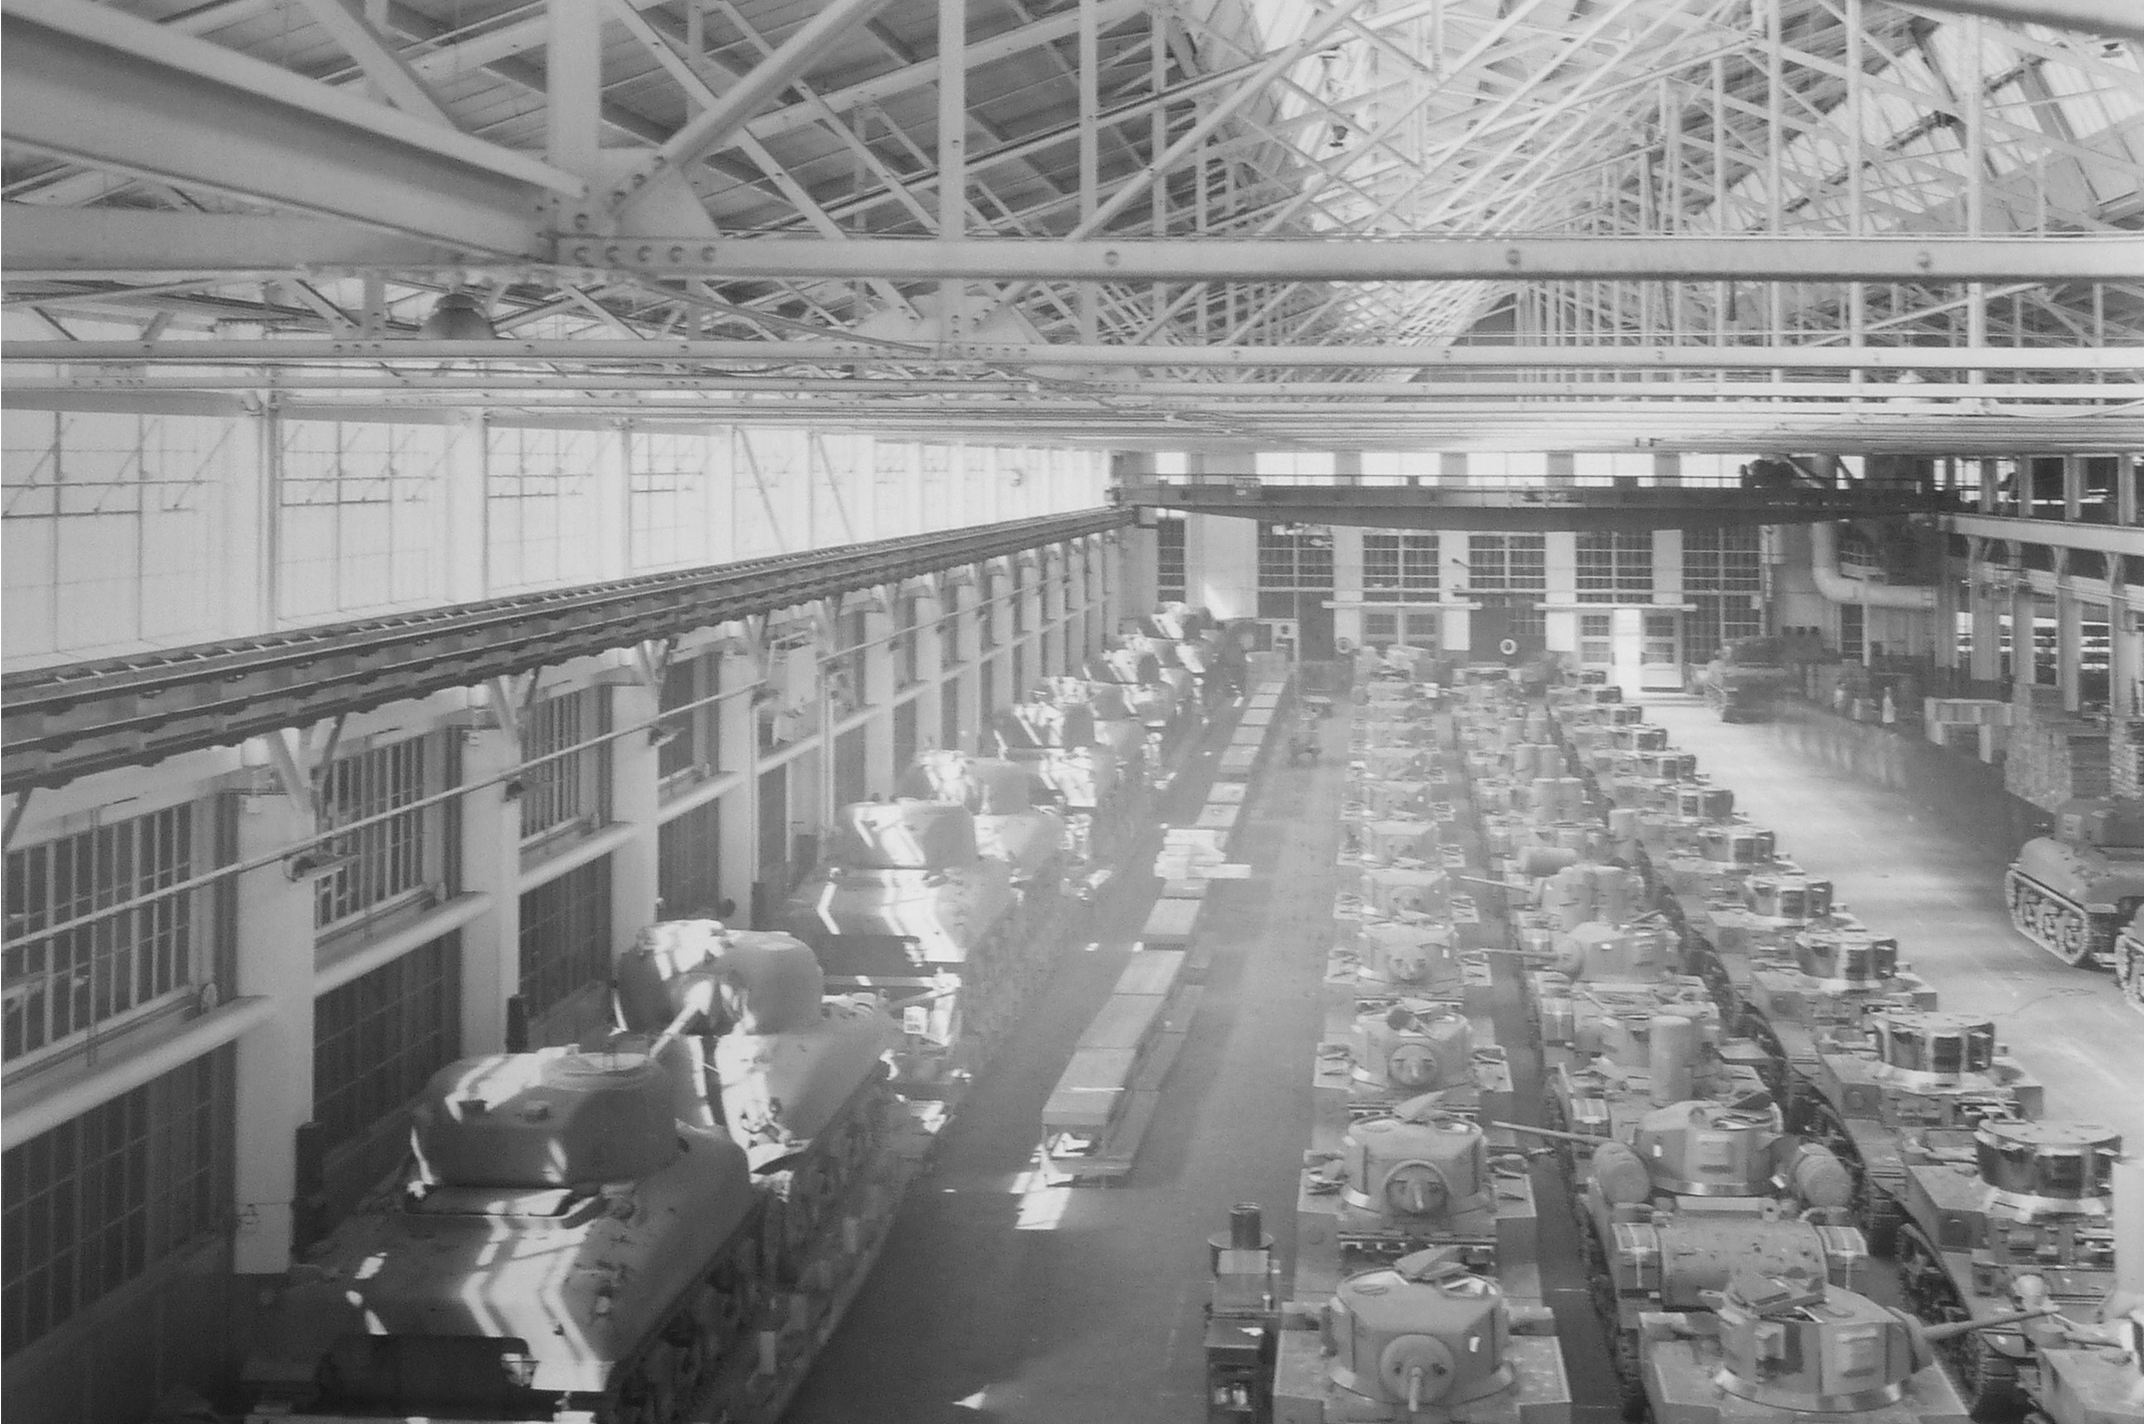 91,000 tanks built at the Ford Assembly Plant during WWII Source: www.cranewaypavilion.com